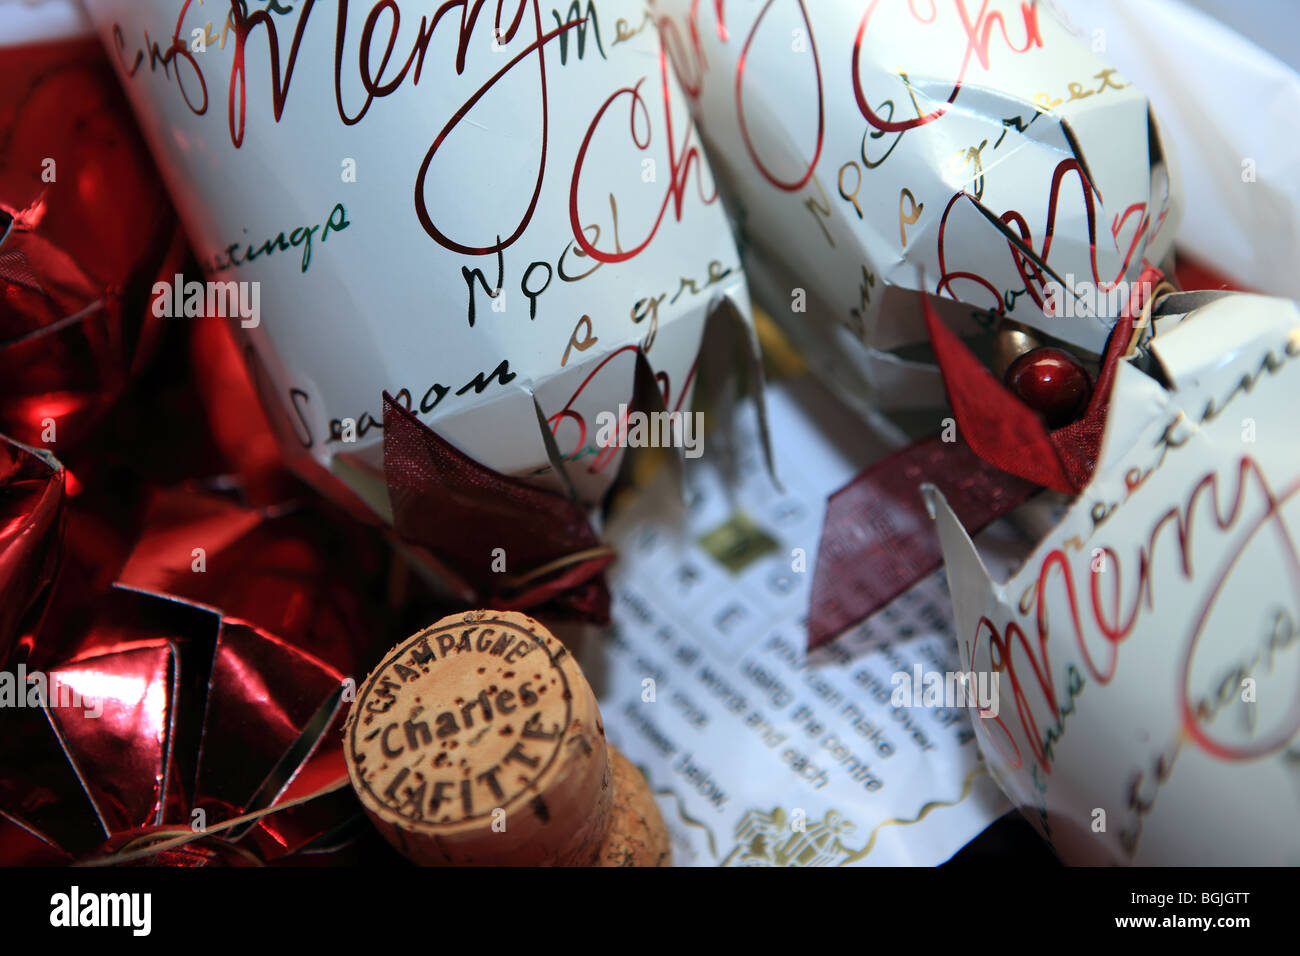 Christmas cleanup used crackers and champagne cork rubbish - Stock Image